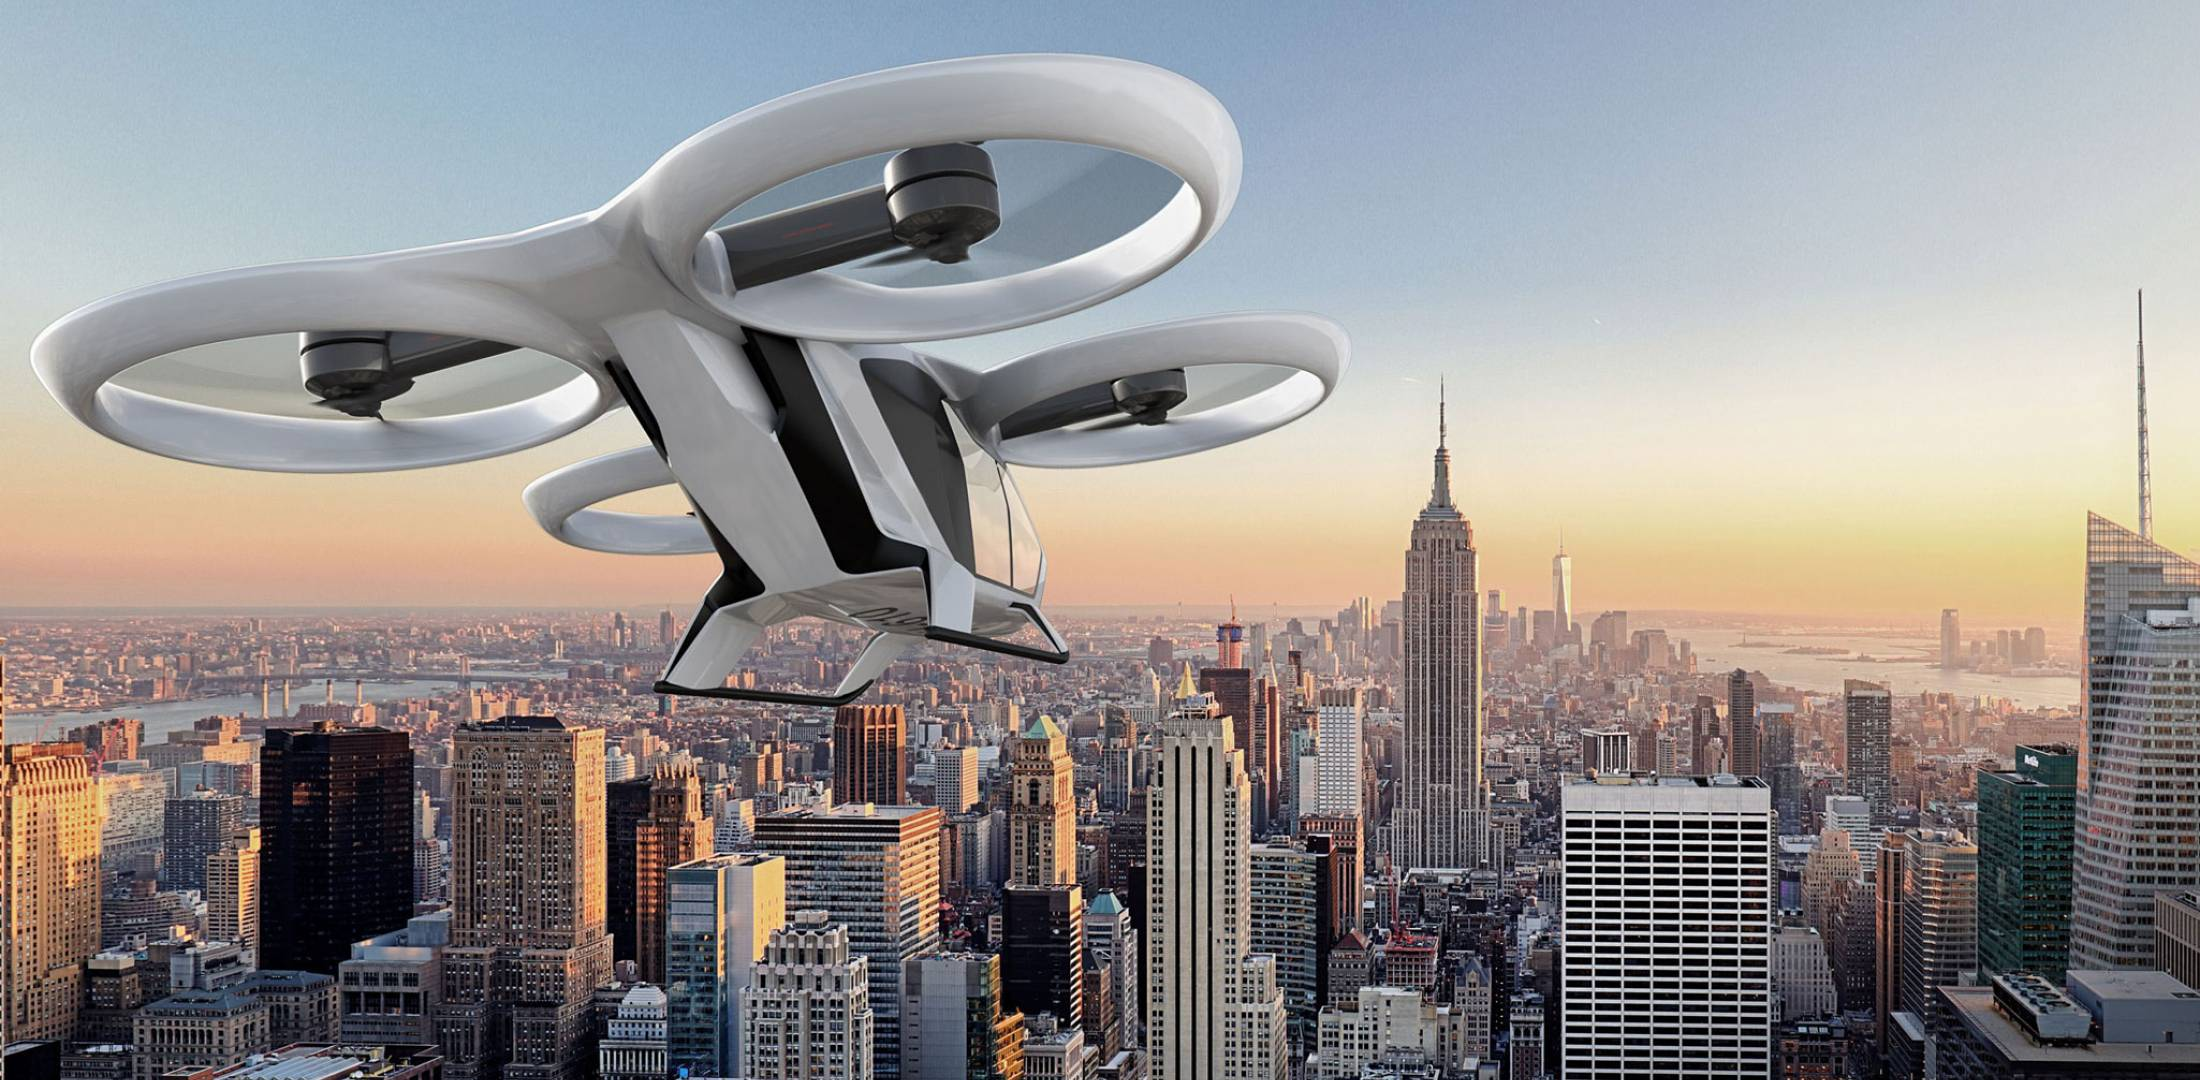 The concept for the four-seat CityAirbus would be for shared passenger operations. Passengers would book an available seat via a smartphone app then take off from the nearest helipad.